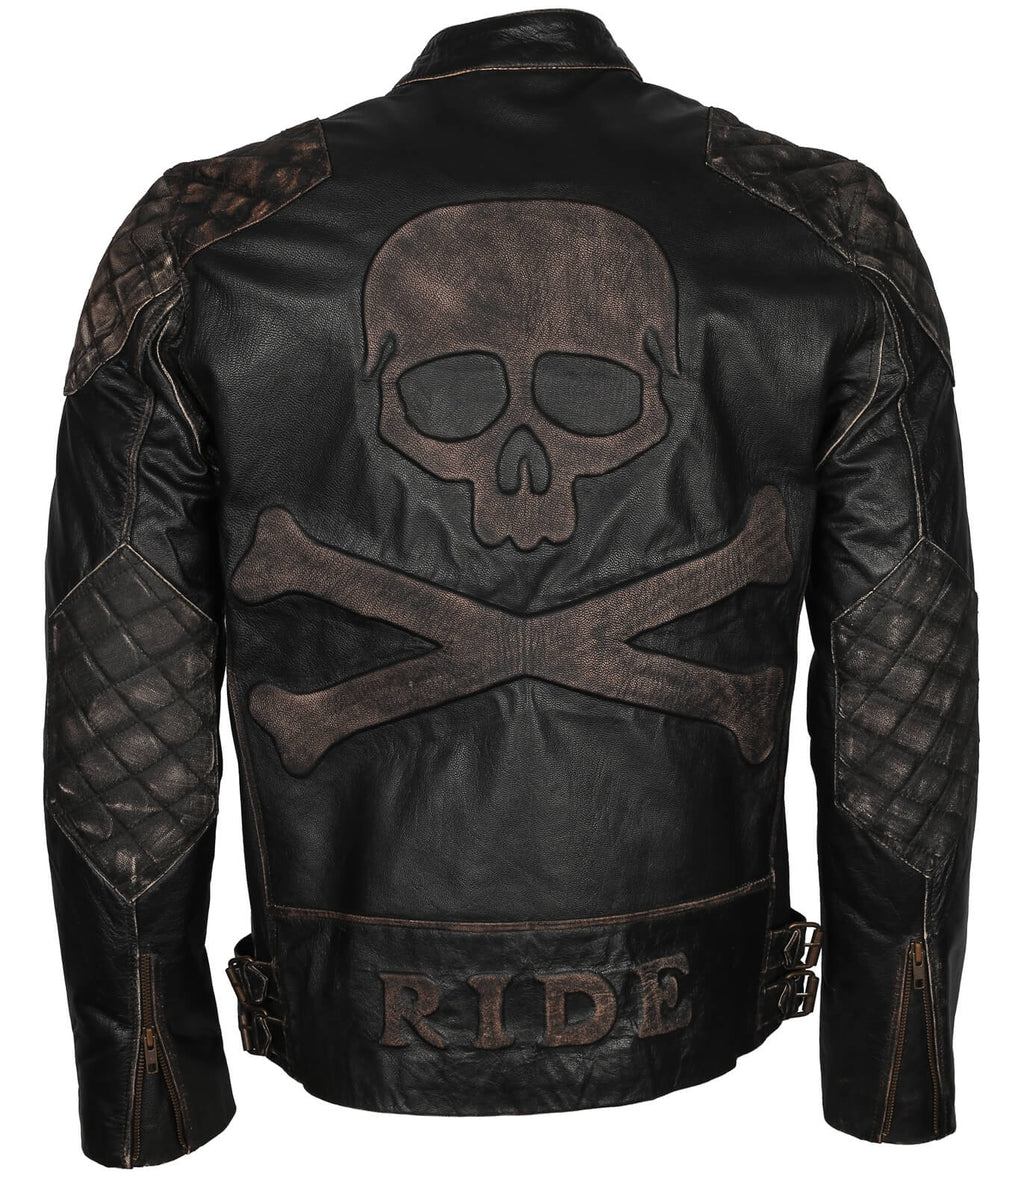 Skull and Crossbones Biker Leather Jacket Mens